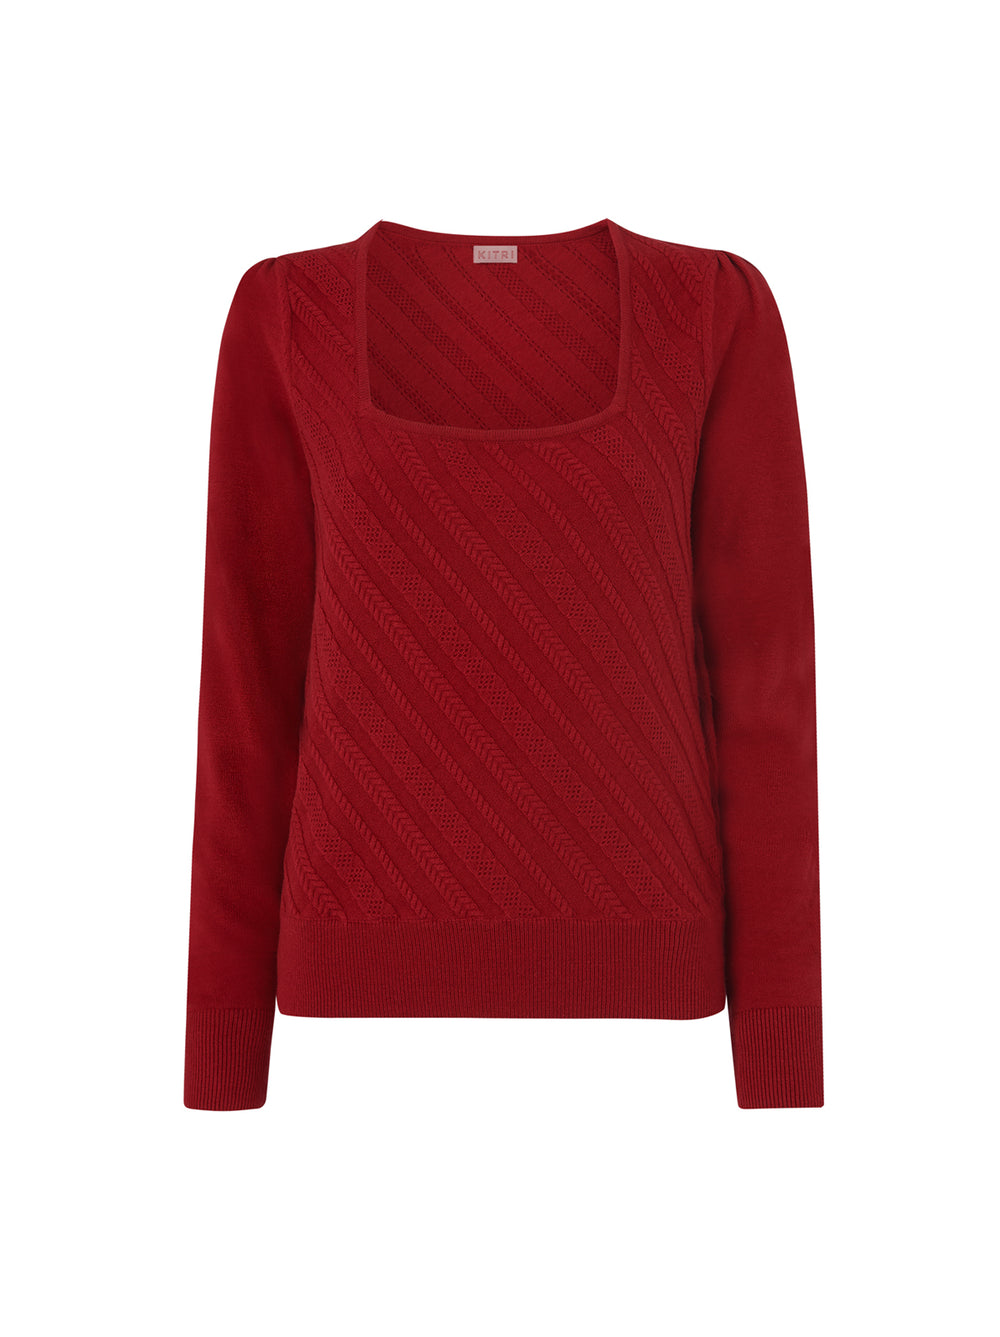 Raven Red Cable Knit Jumper by KITRI Studio